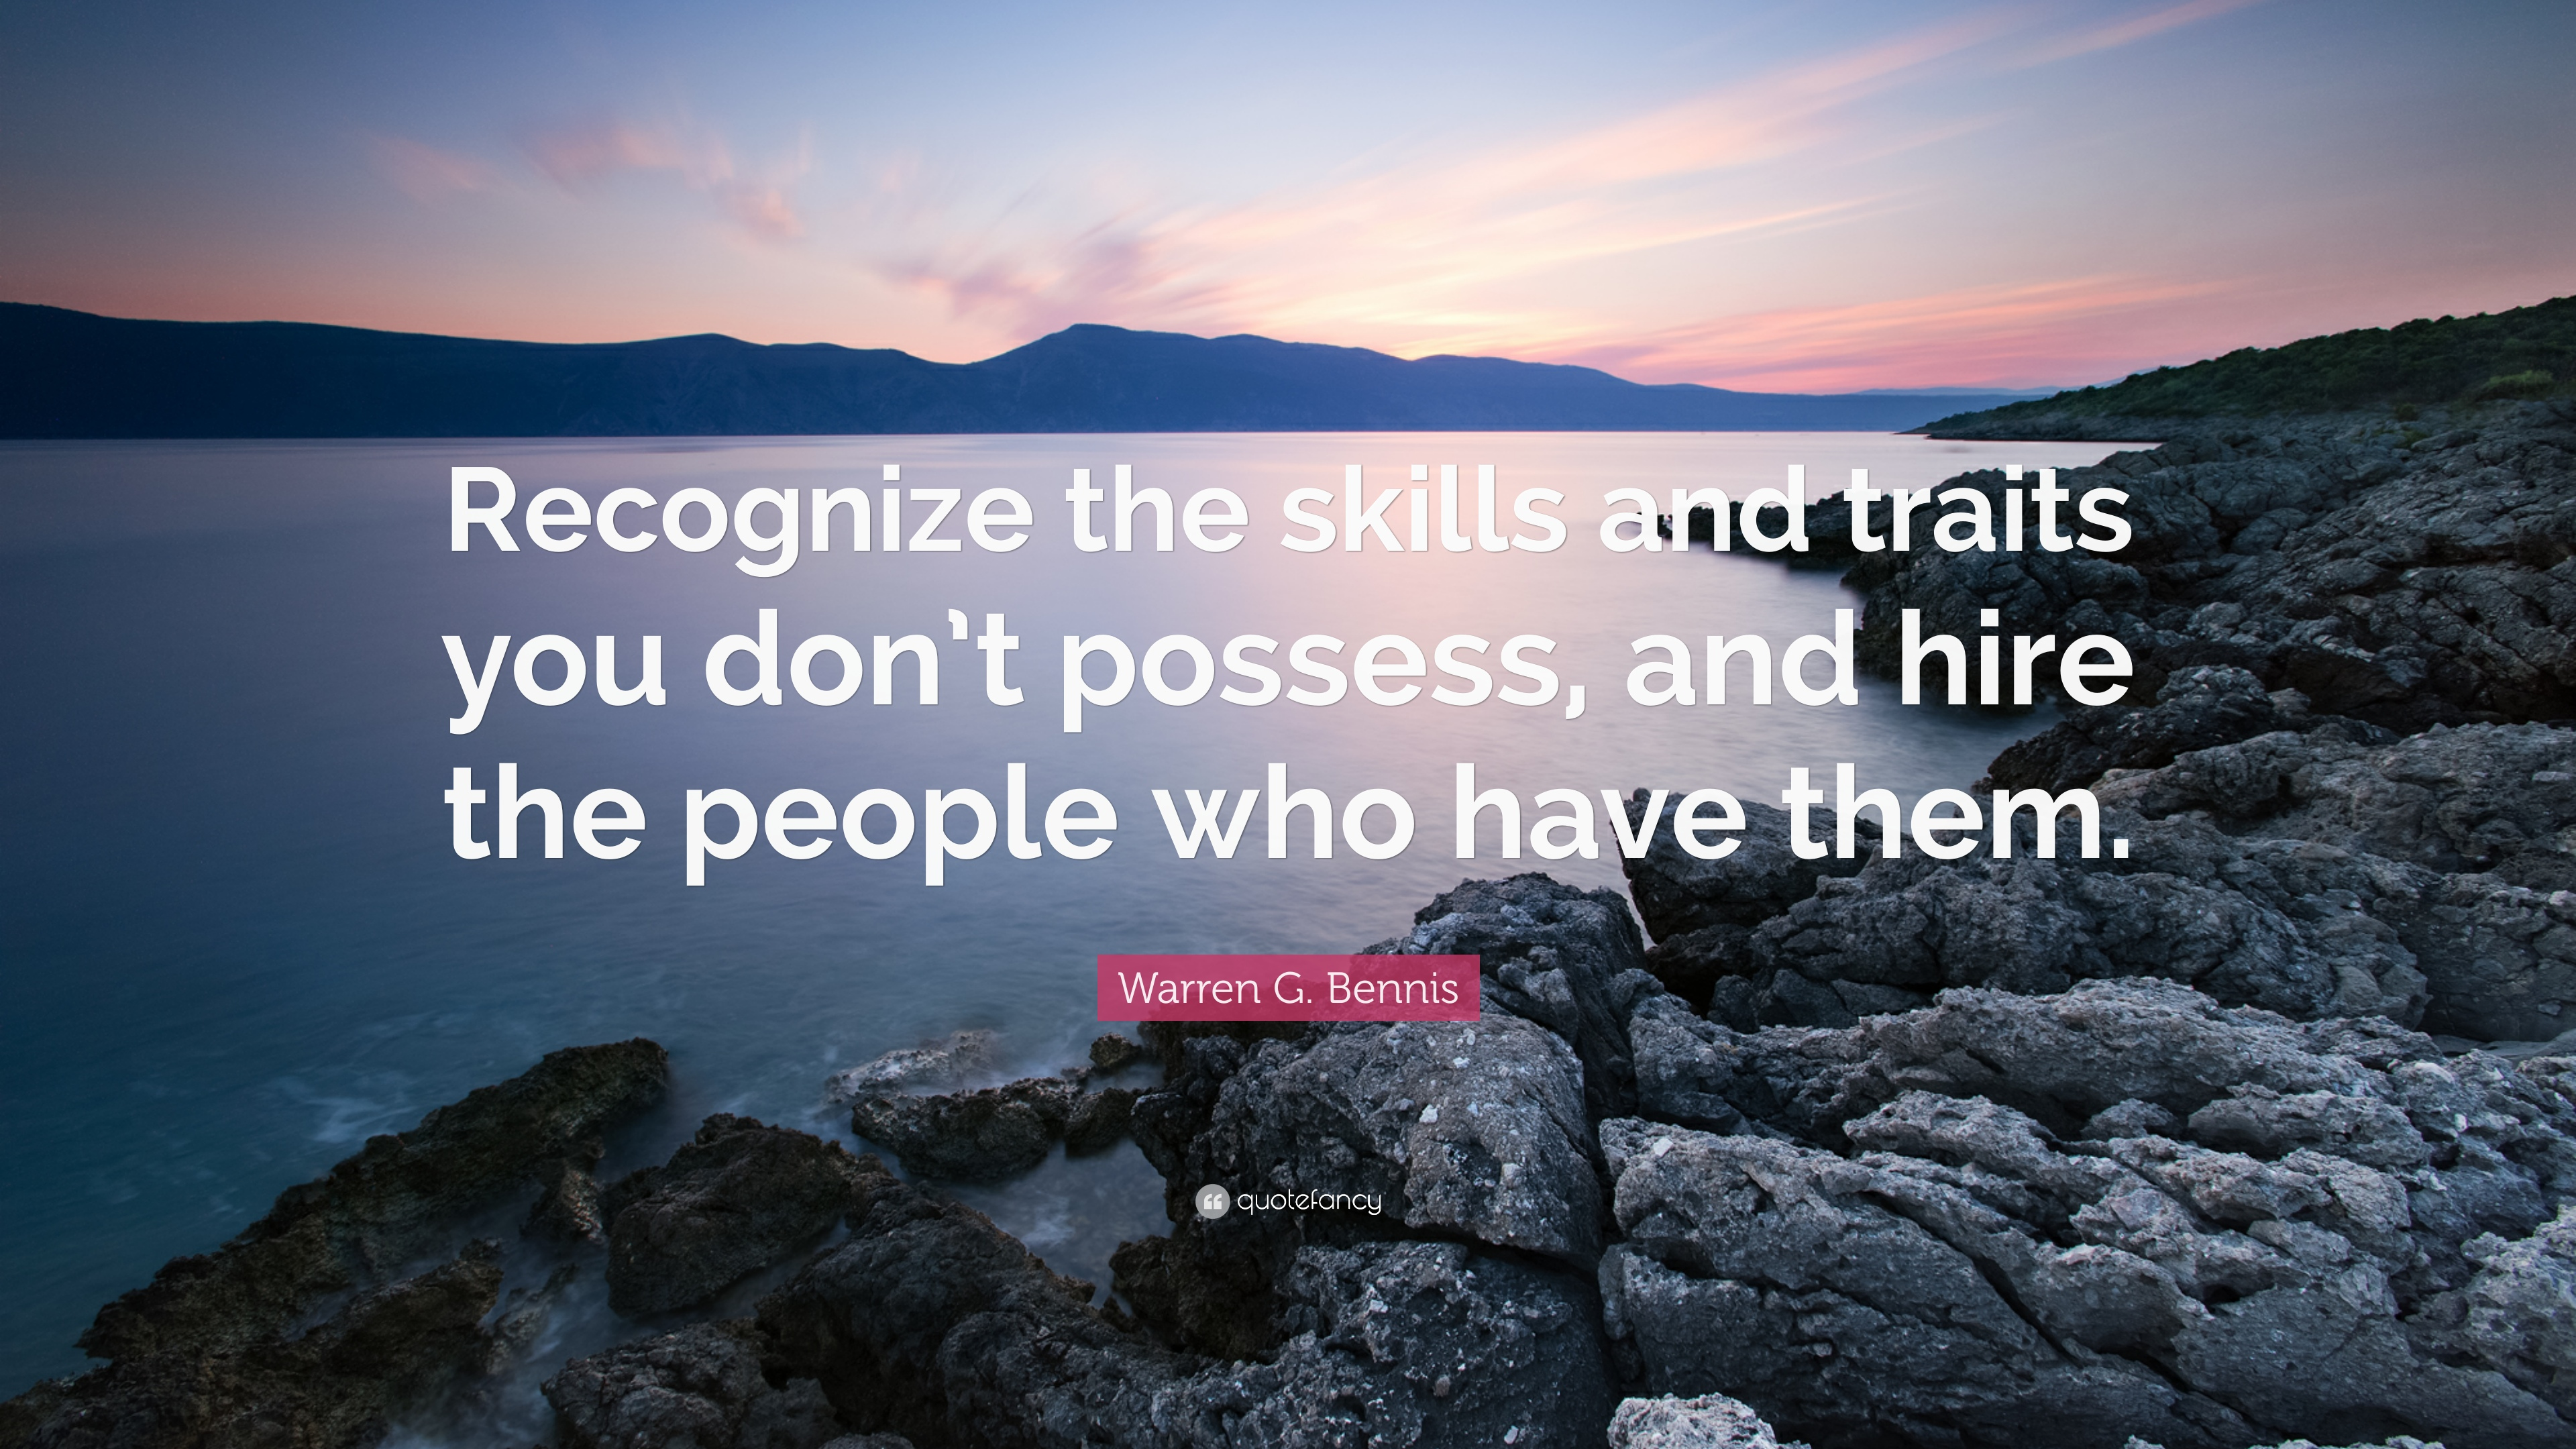 warren g bennis quote recognize the skills and traits you don t warren g bennis quote recognize the skills and traits you don t